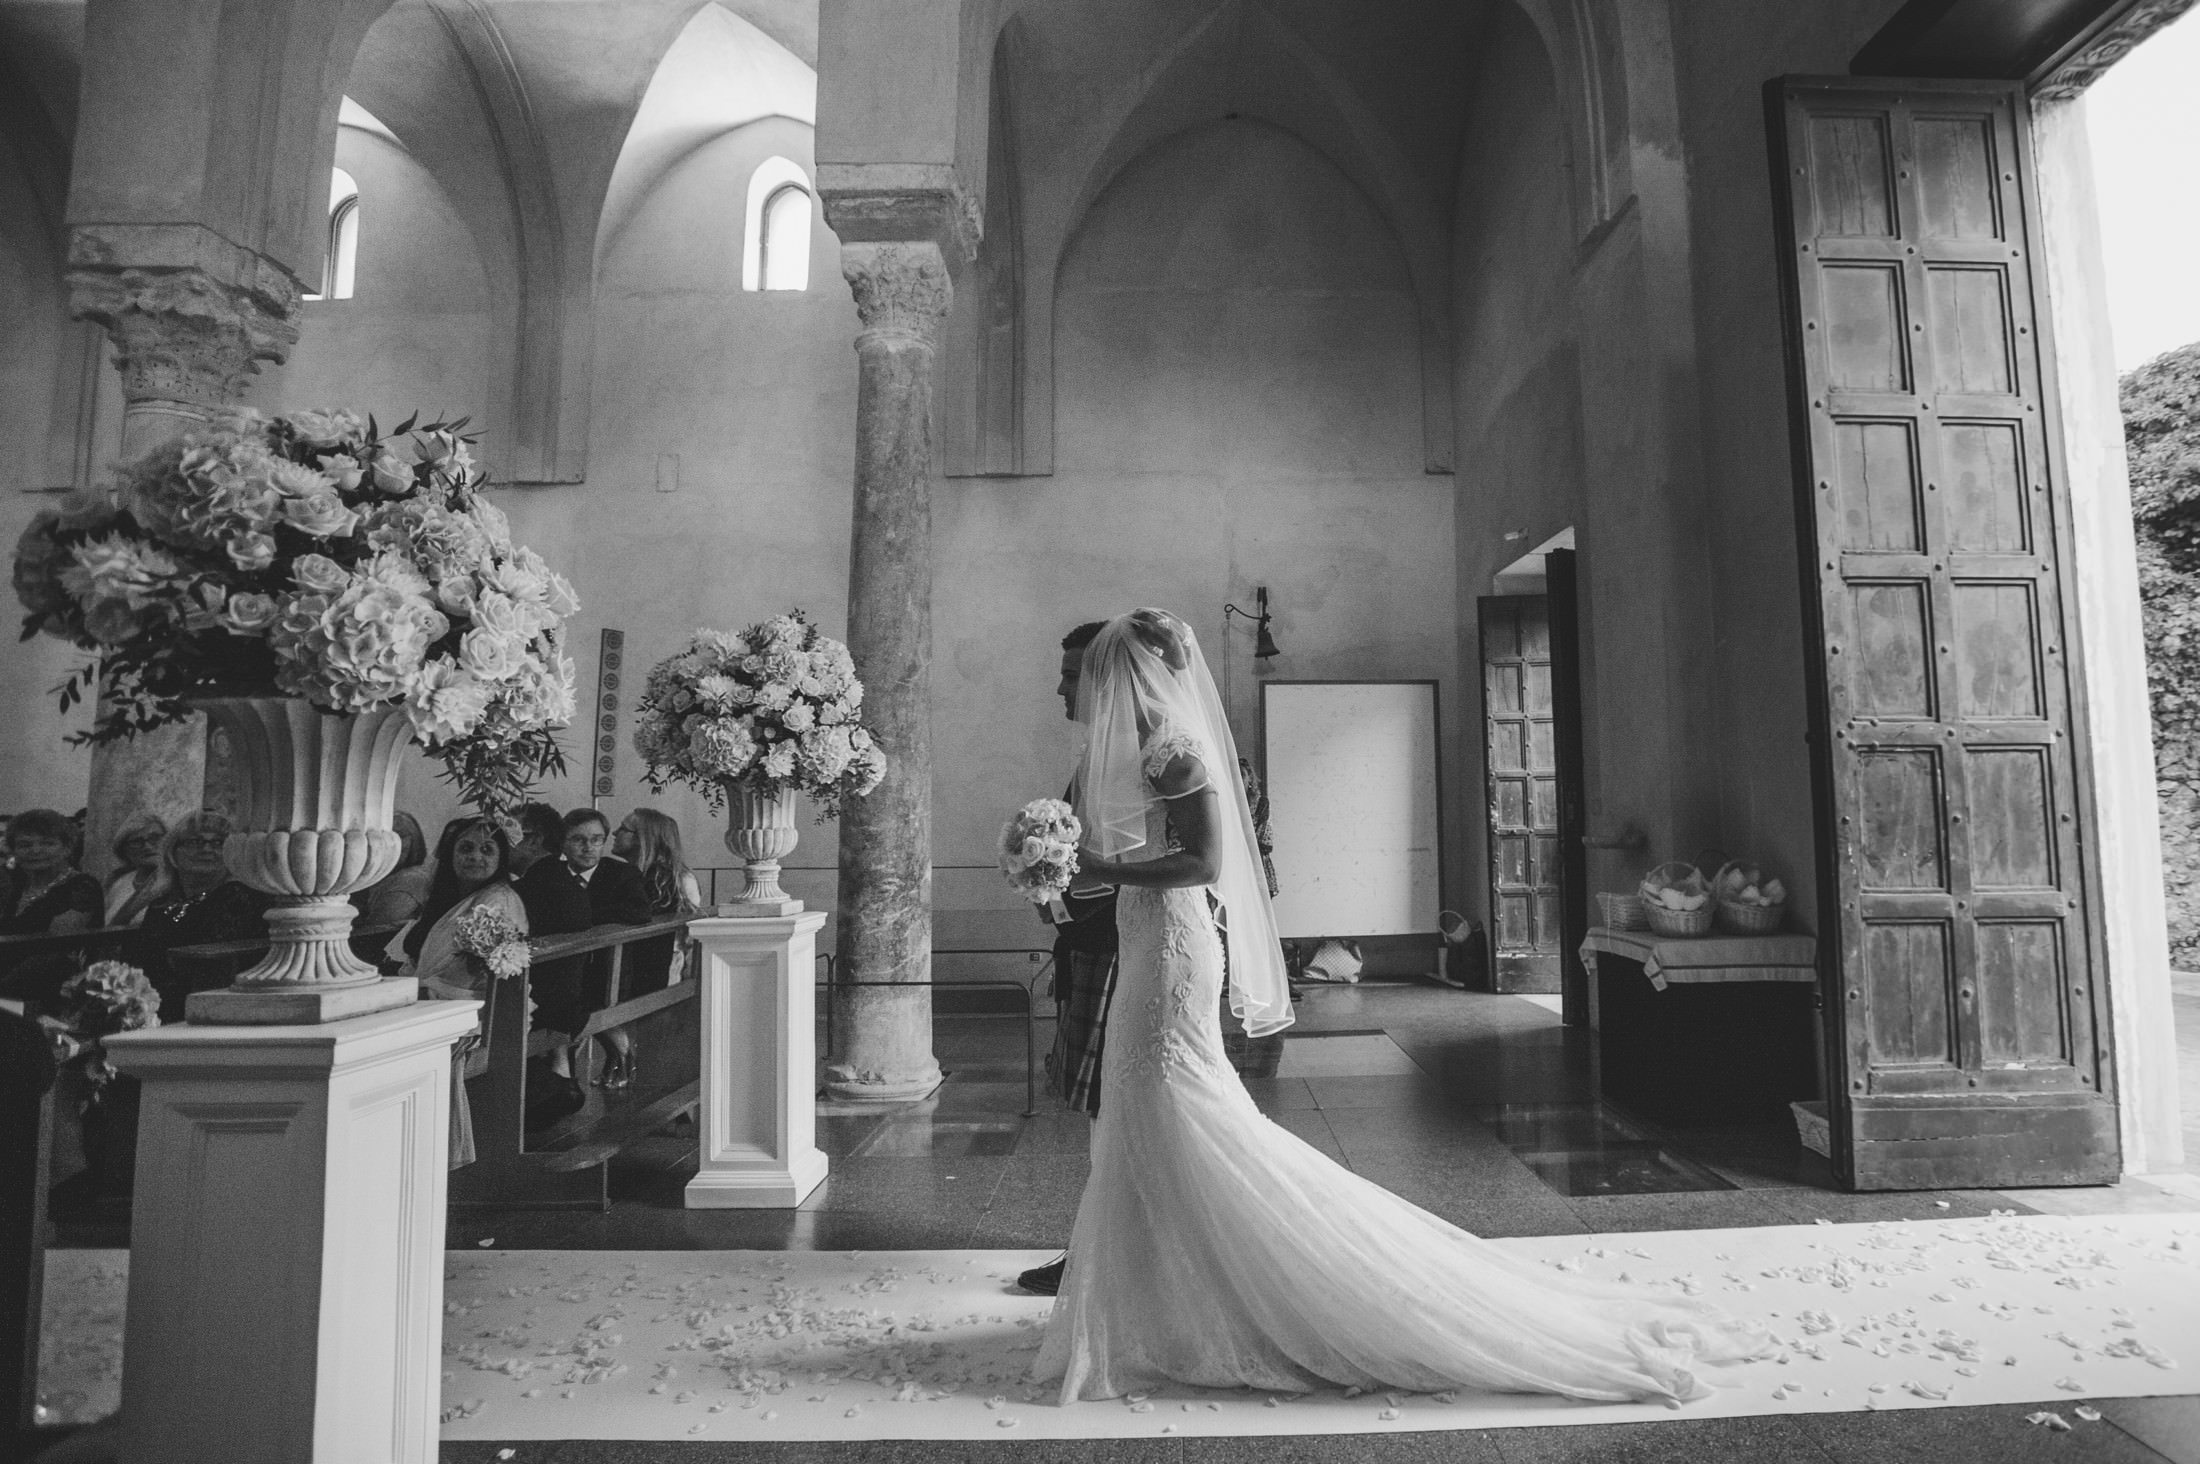 gianni di natale the bride walks to the aisle with her father black and white